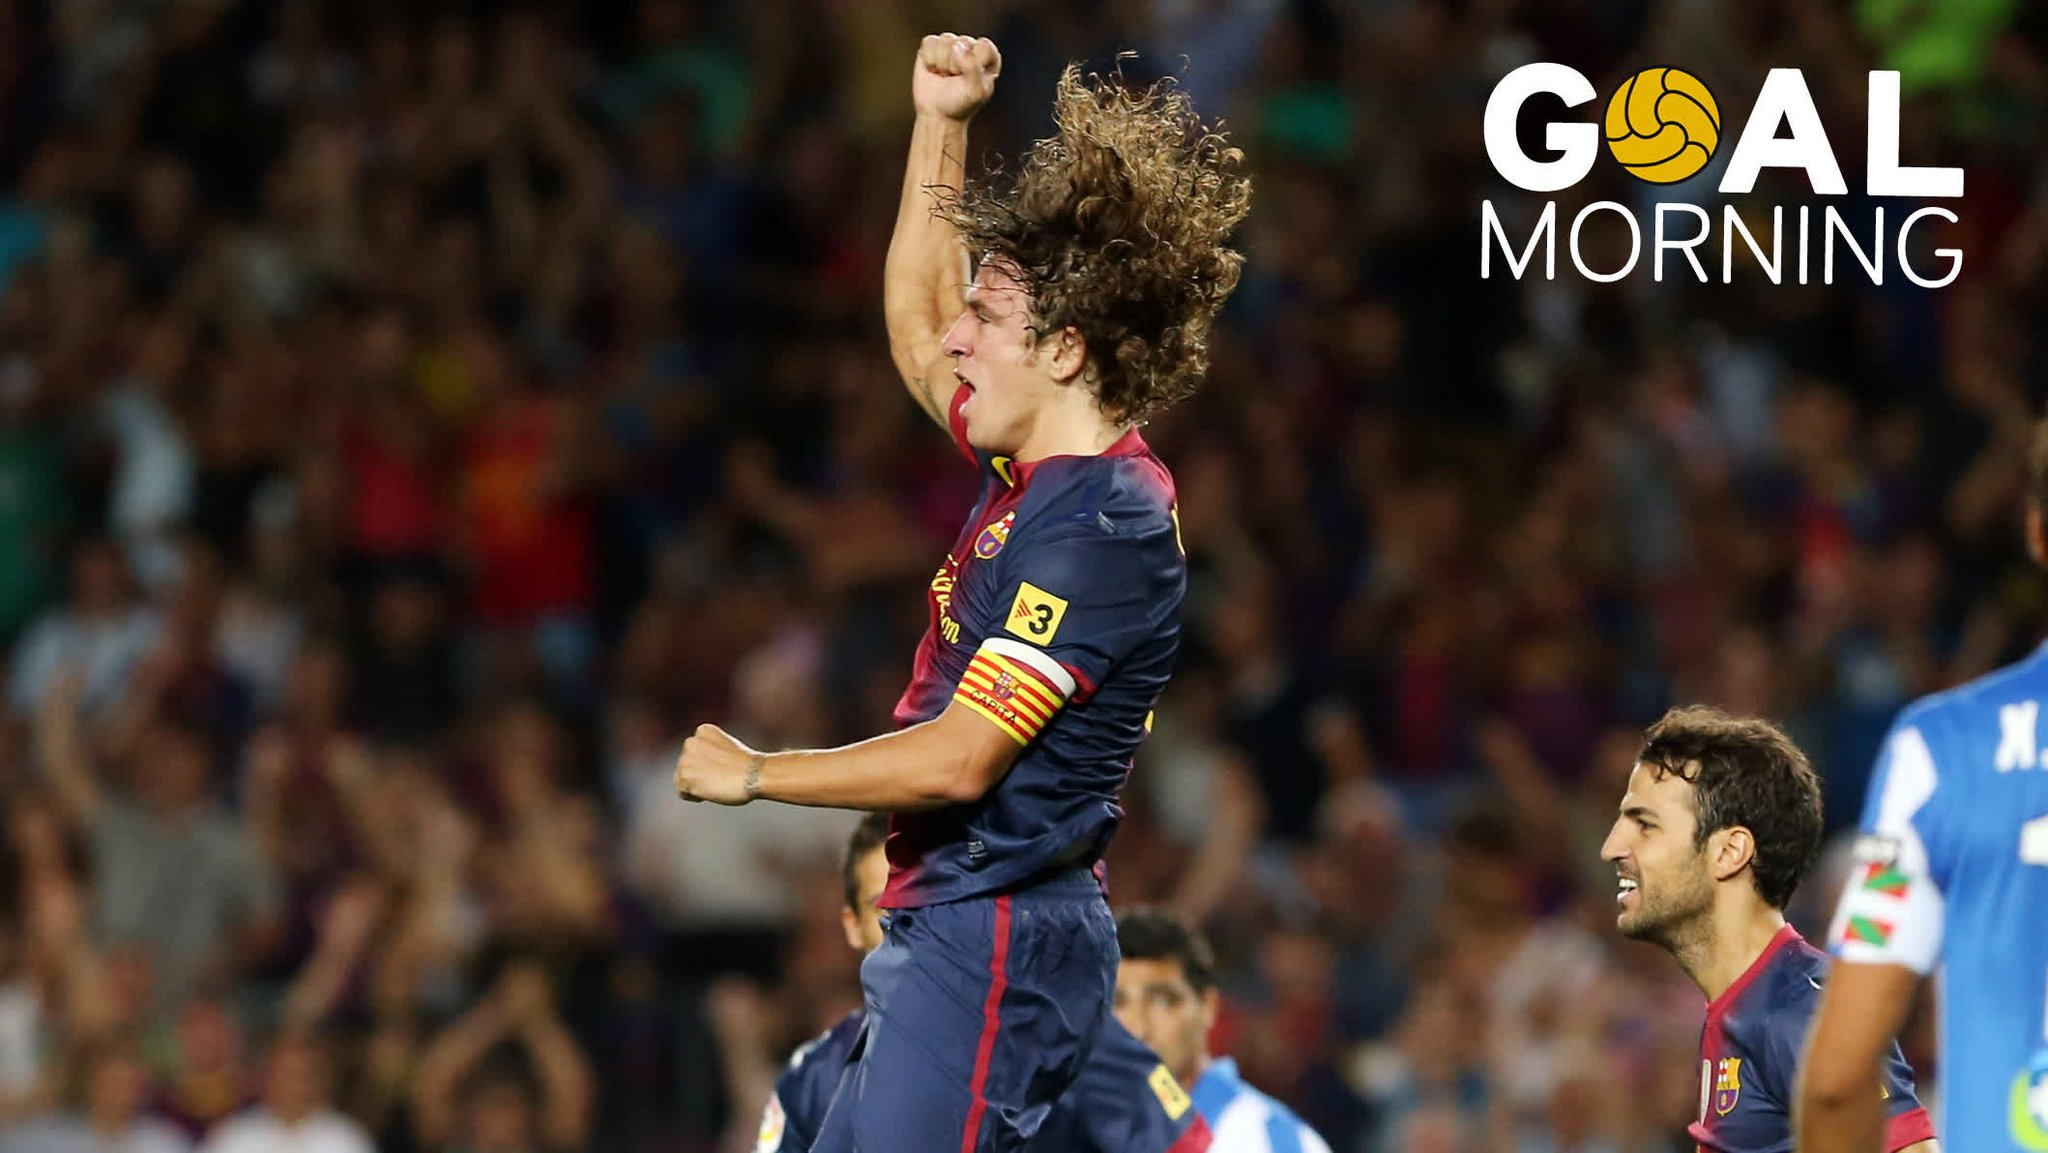 G⚽️AL MORNING!!! Have a nice weekend! �� @Carles5puyol  �� https://t.co/TInt5nSB0W